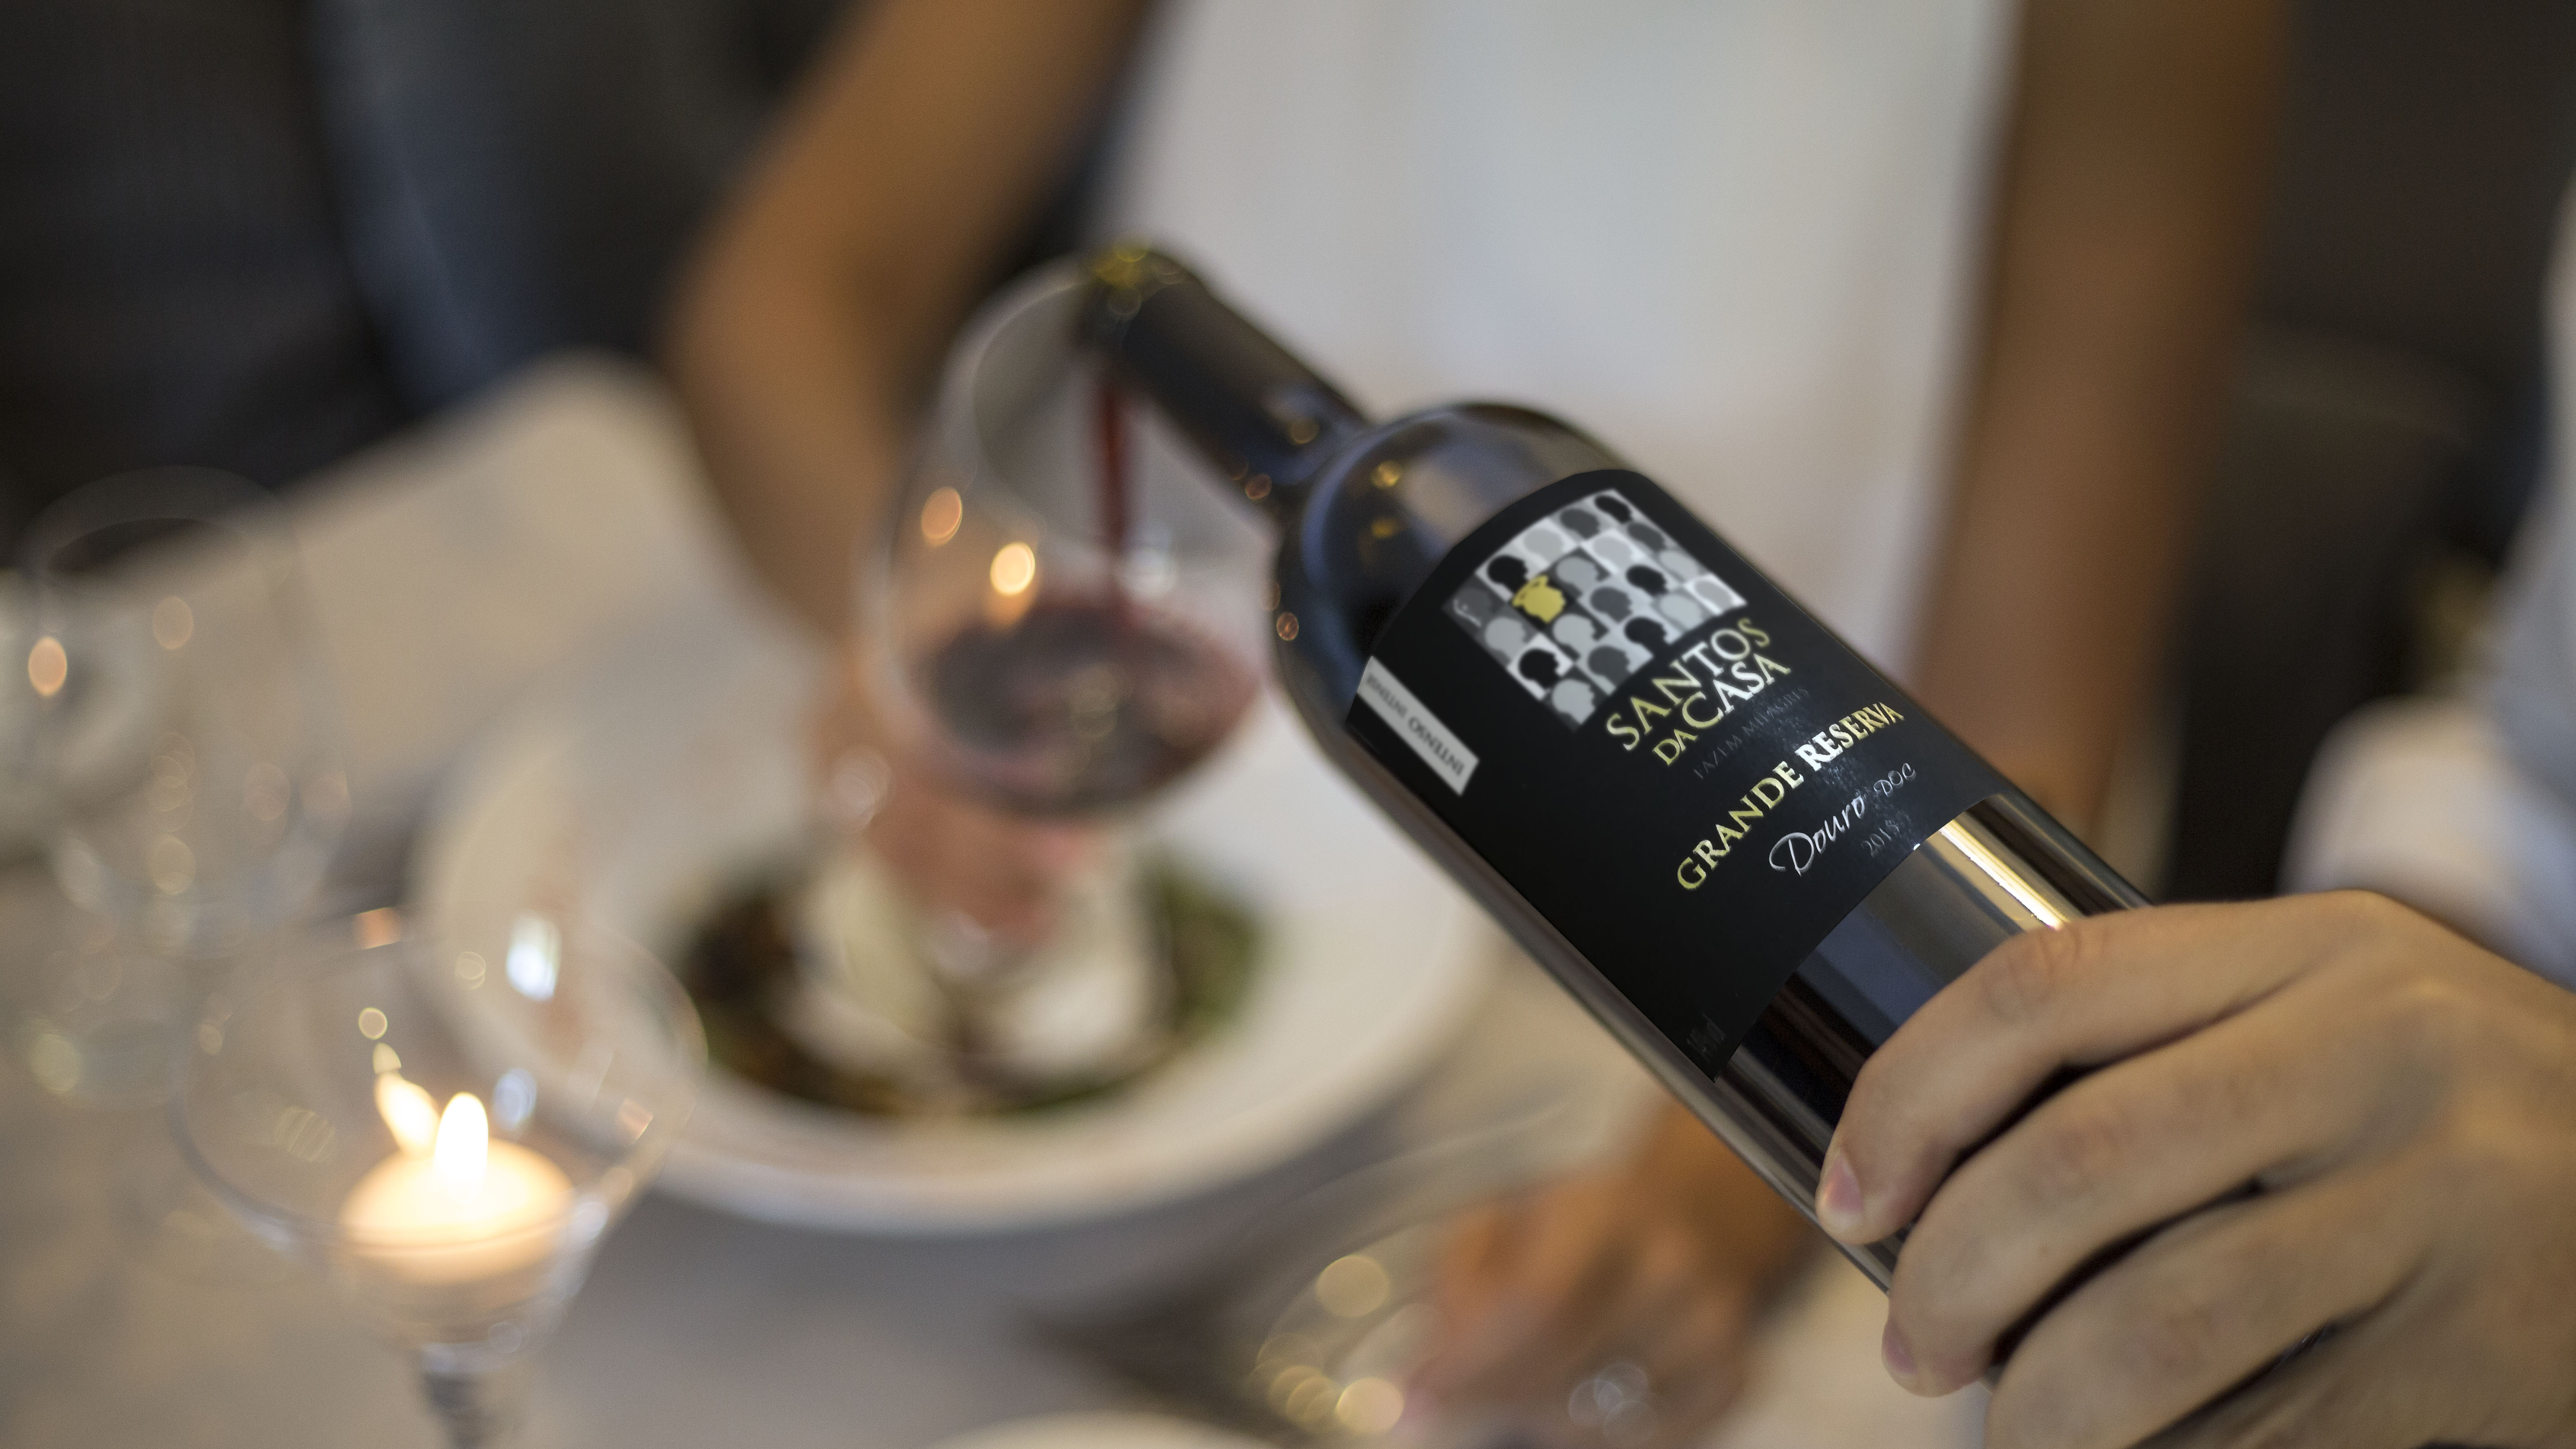 Launch of the new harvest of Santos da Casa Grande Reserva Douro